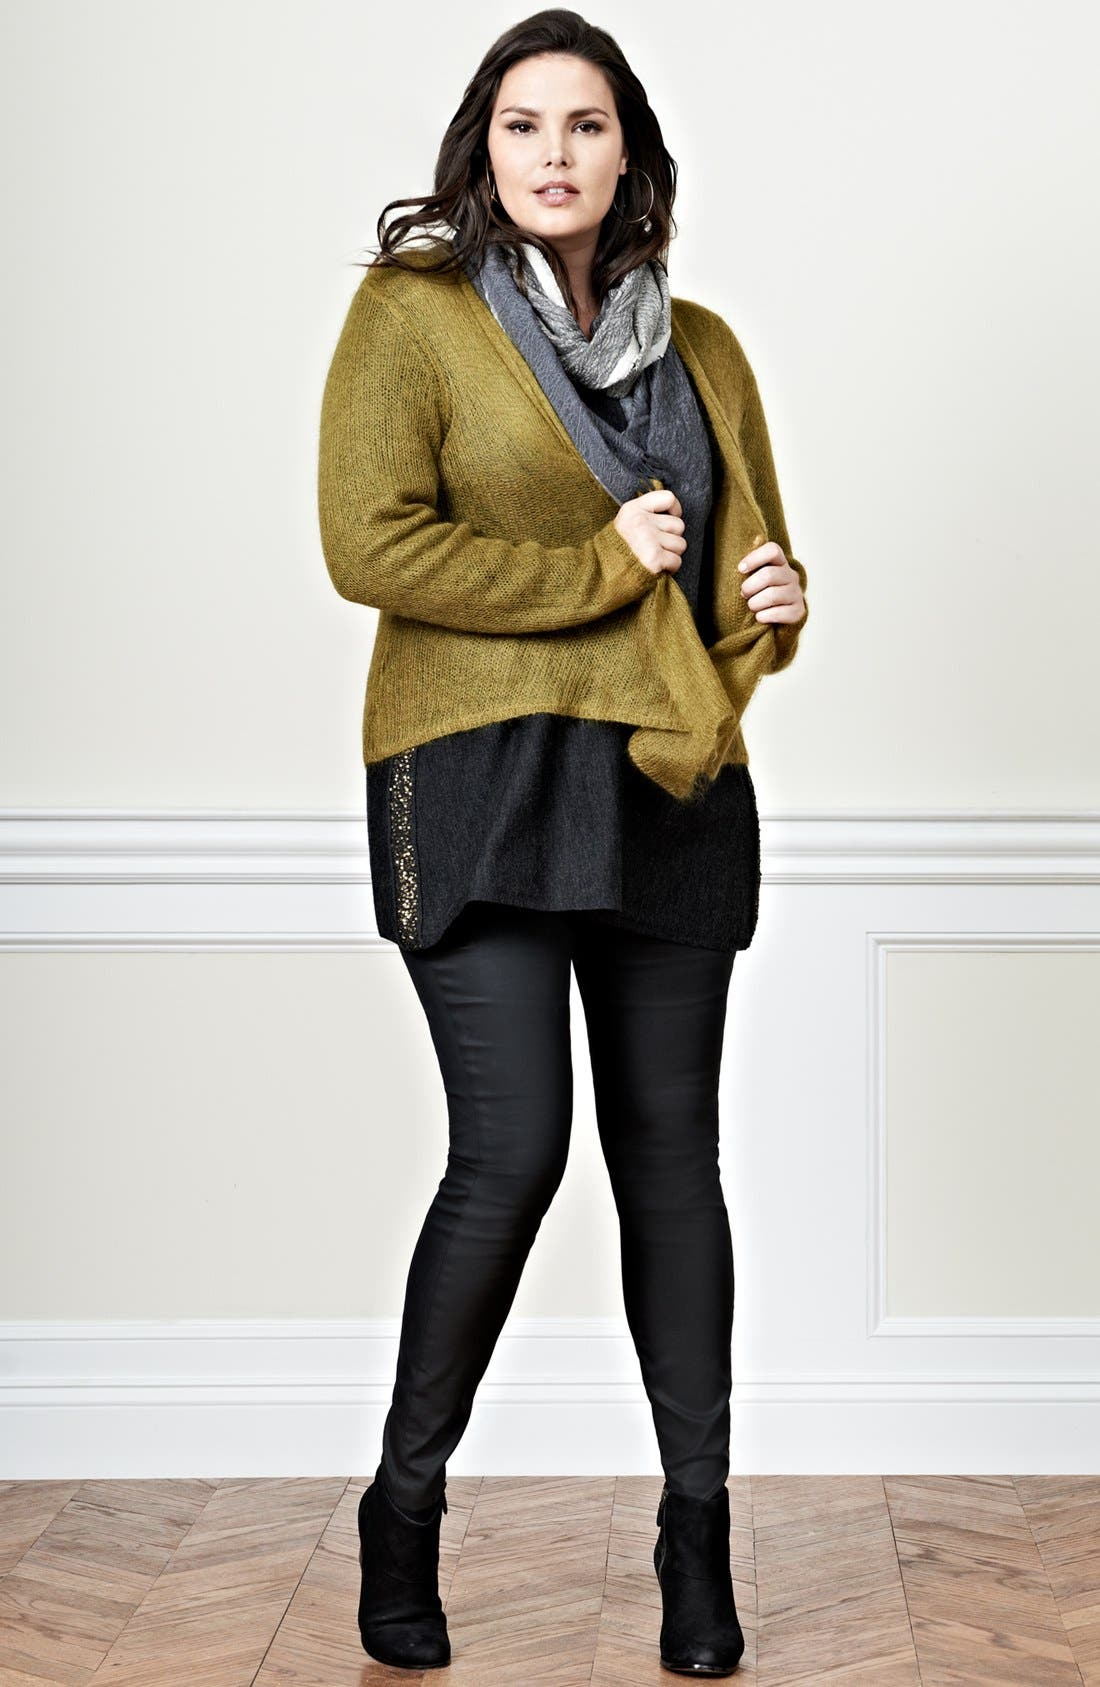 Main Image - Eileen Fisher Cardigan, Sweater & Jeans